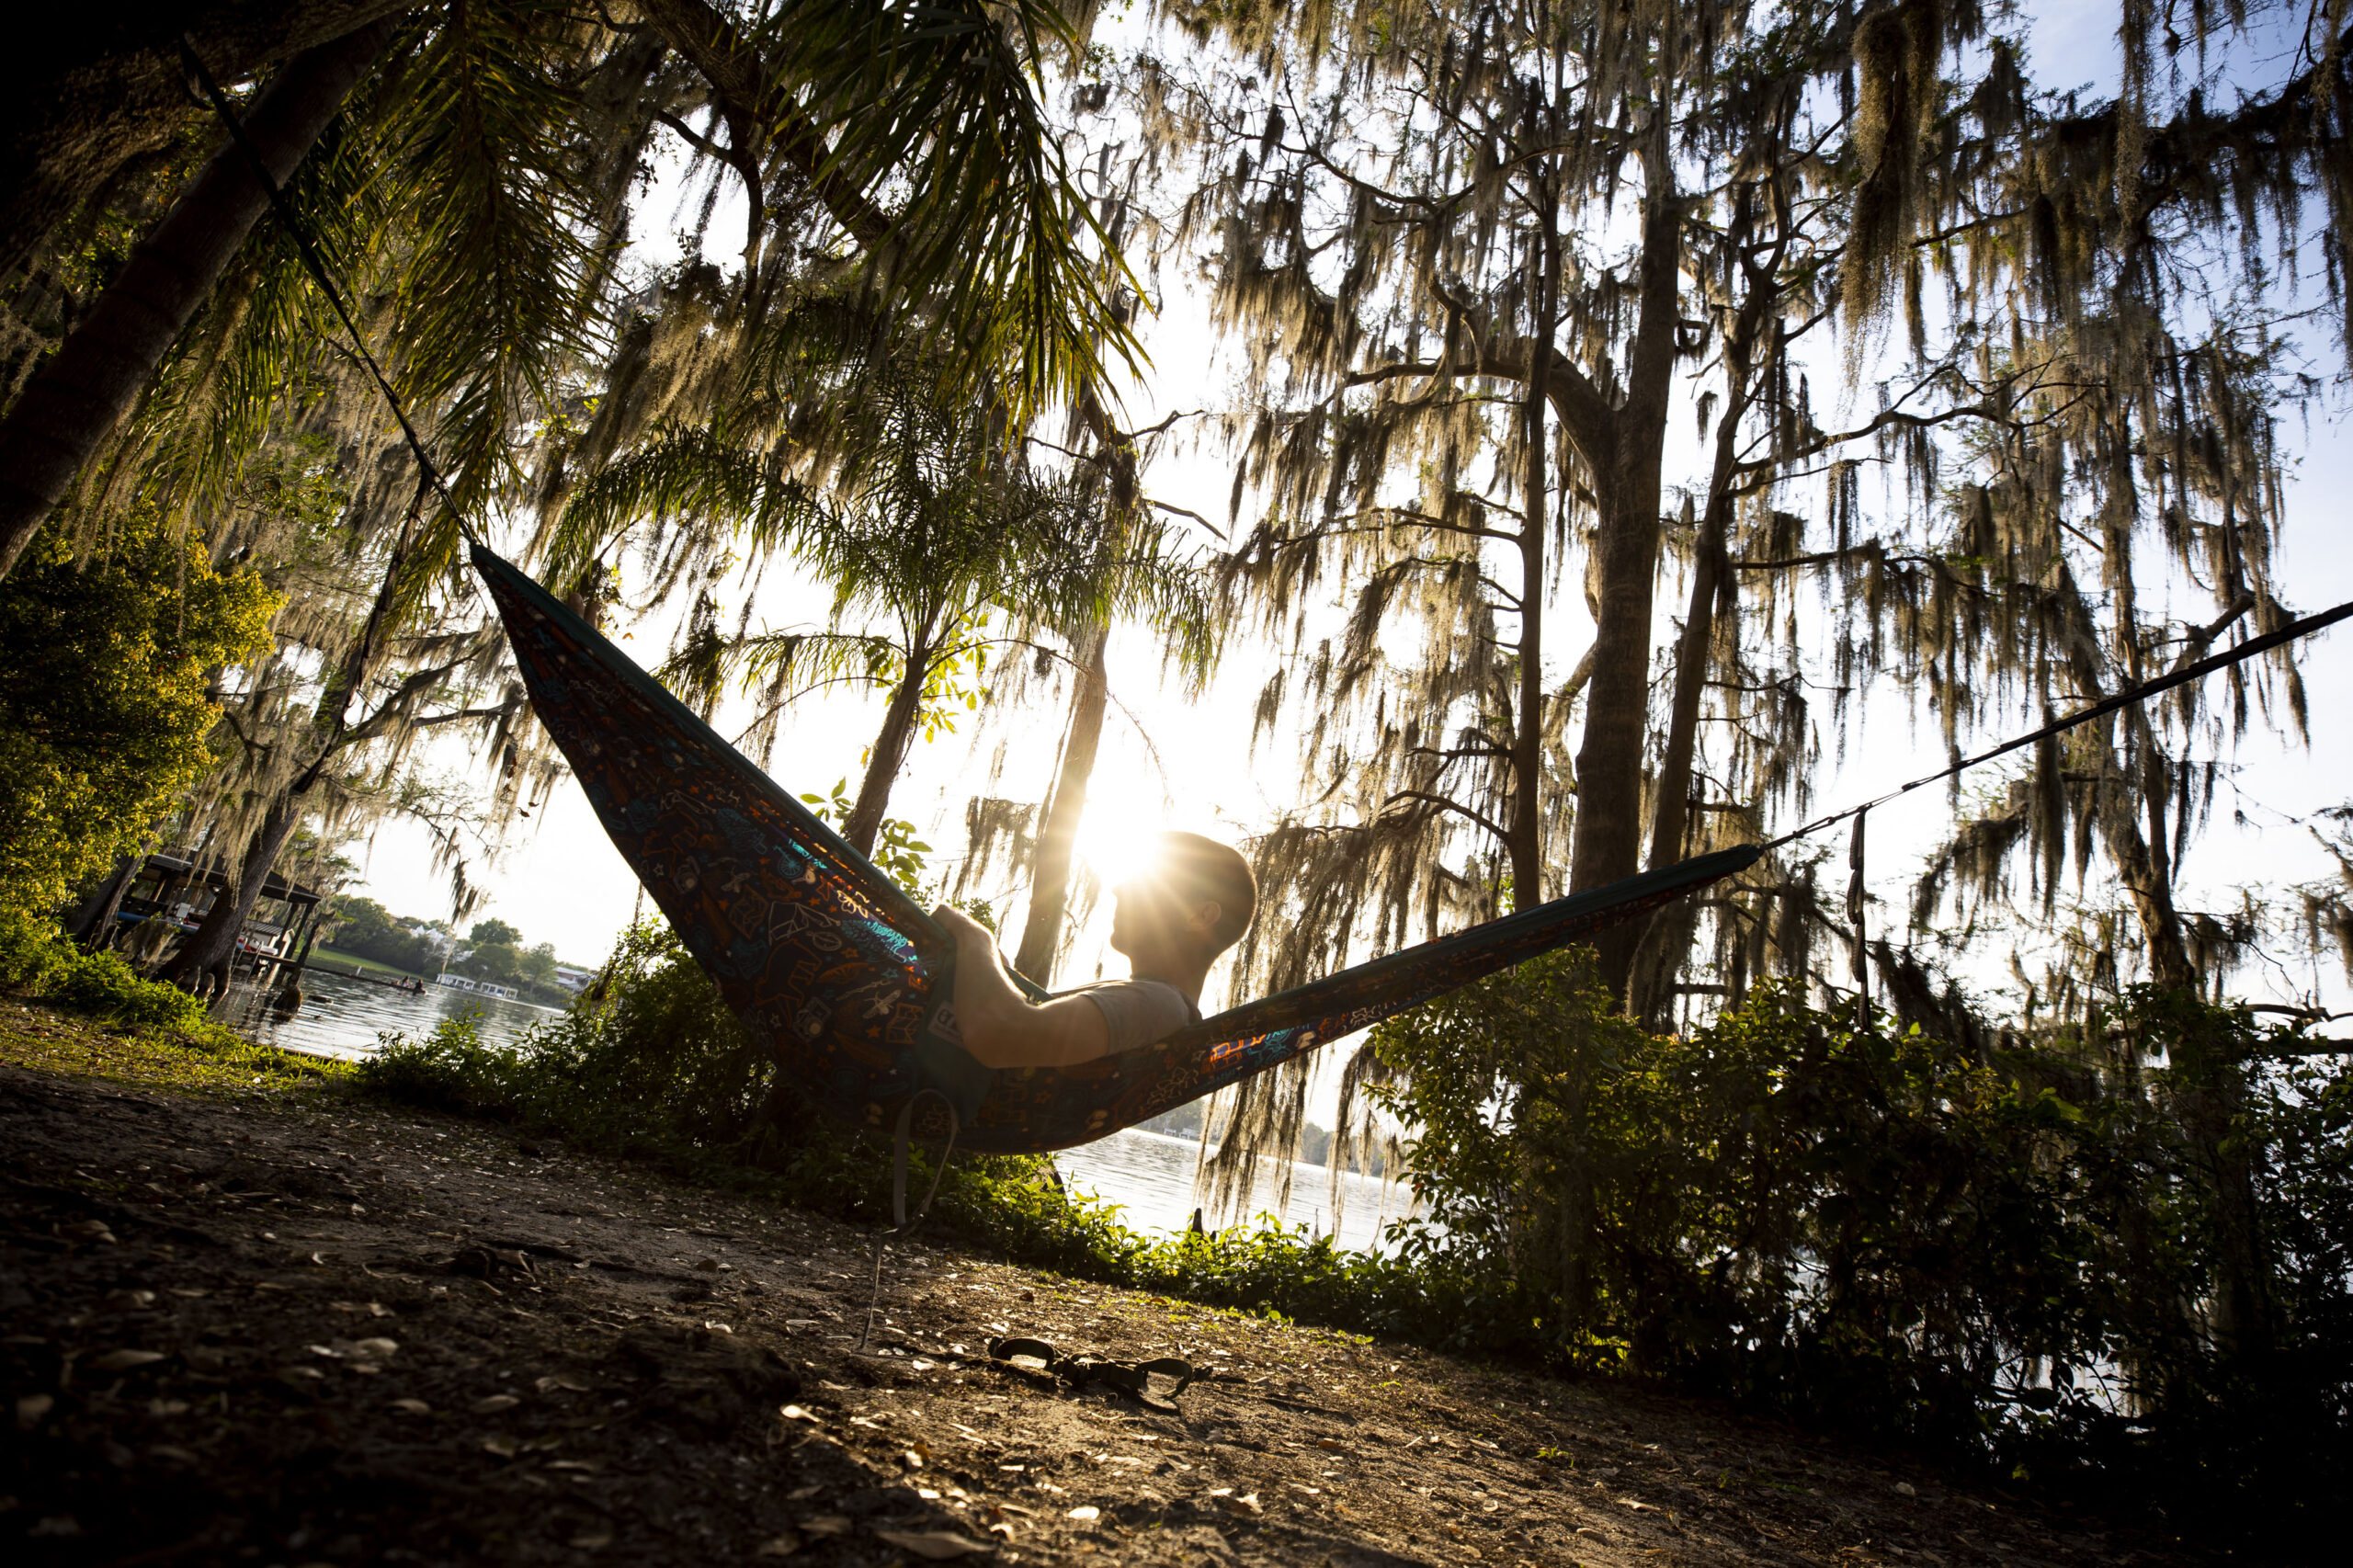 A man lays in a hammock surrounded by Spanish Moss in Azalea Garden in Winter Park, Florida.